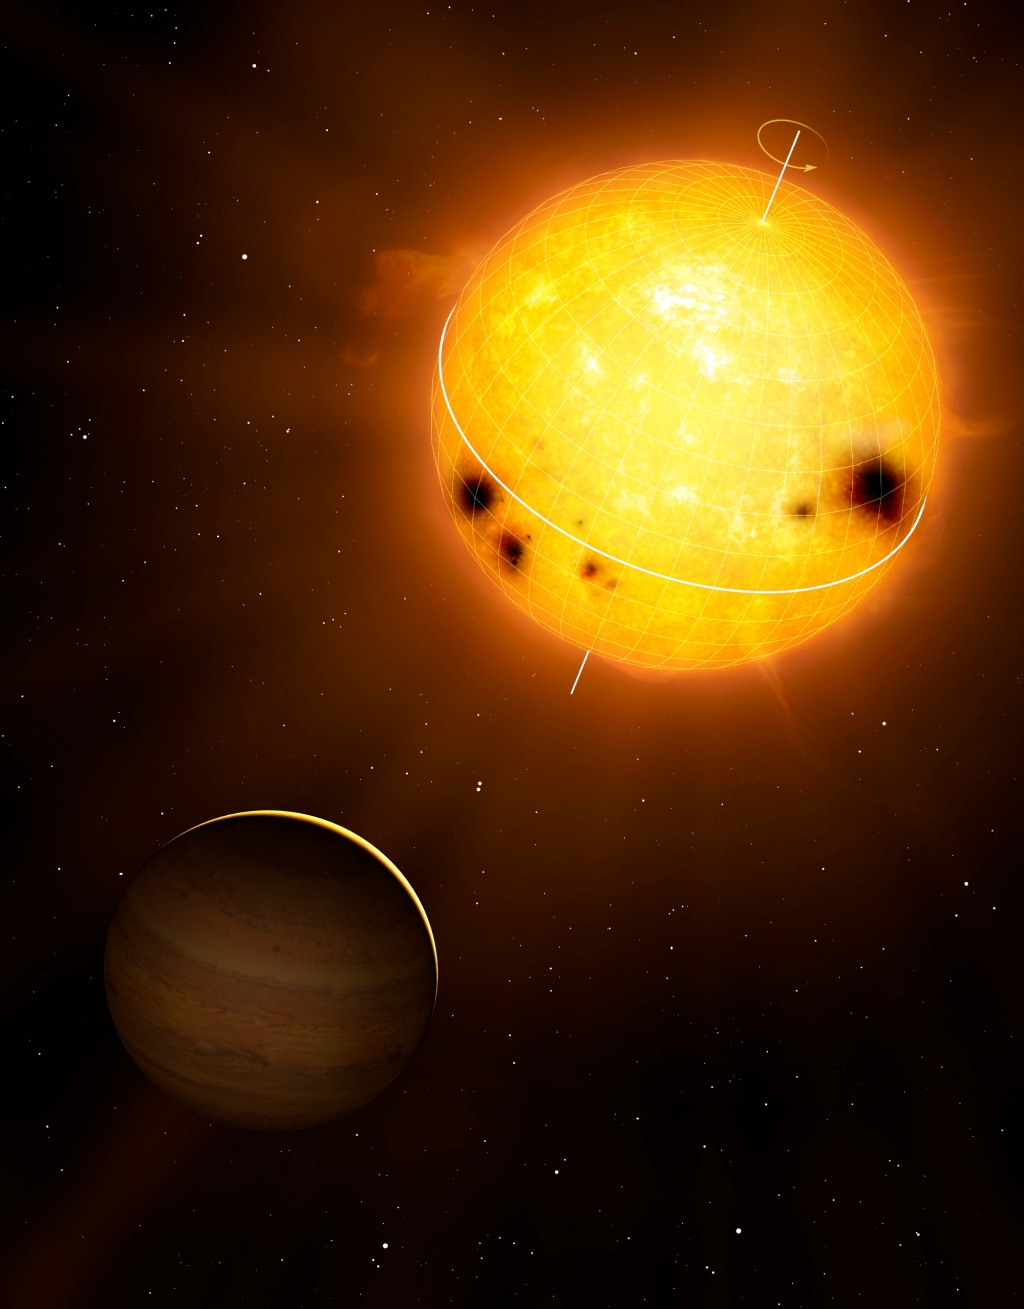 star orbiting the sun - photo #20